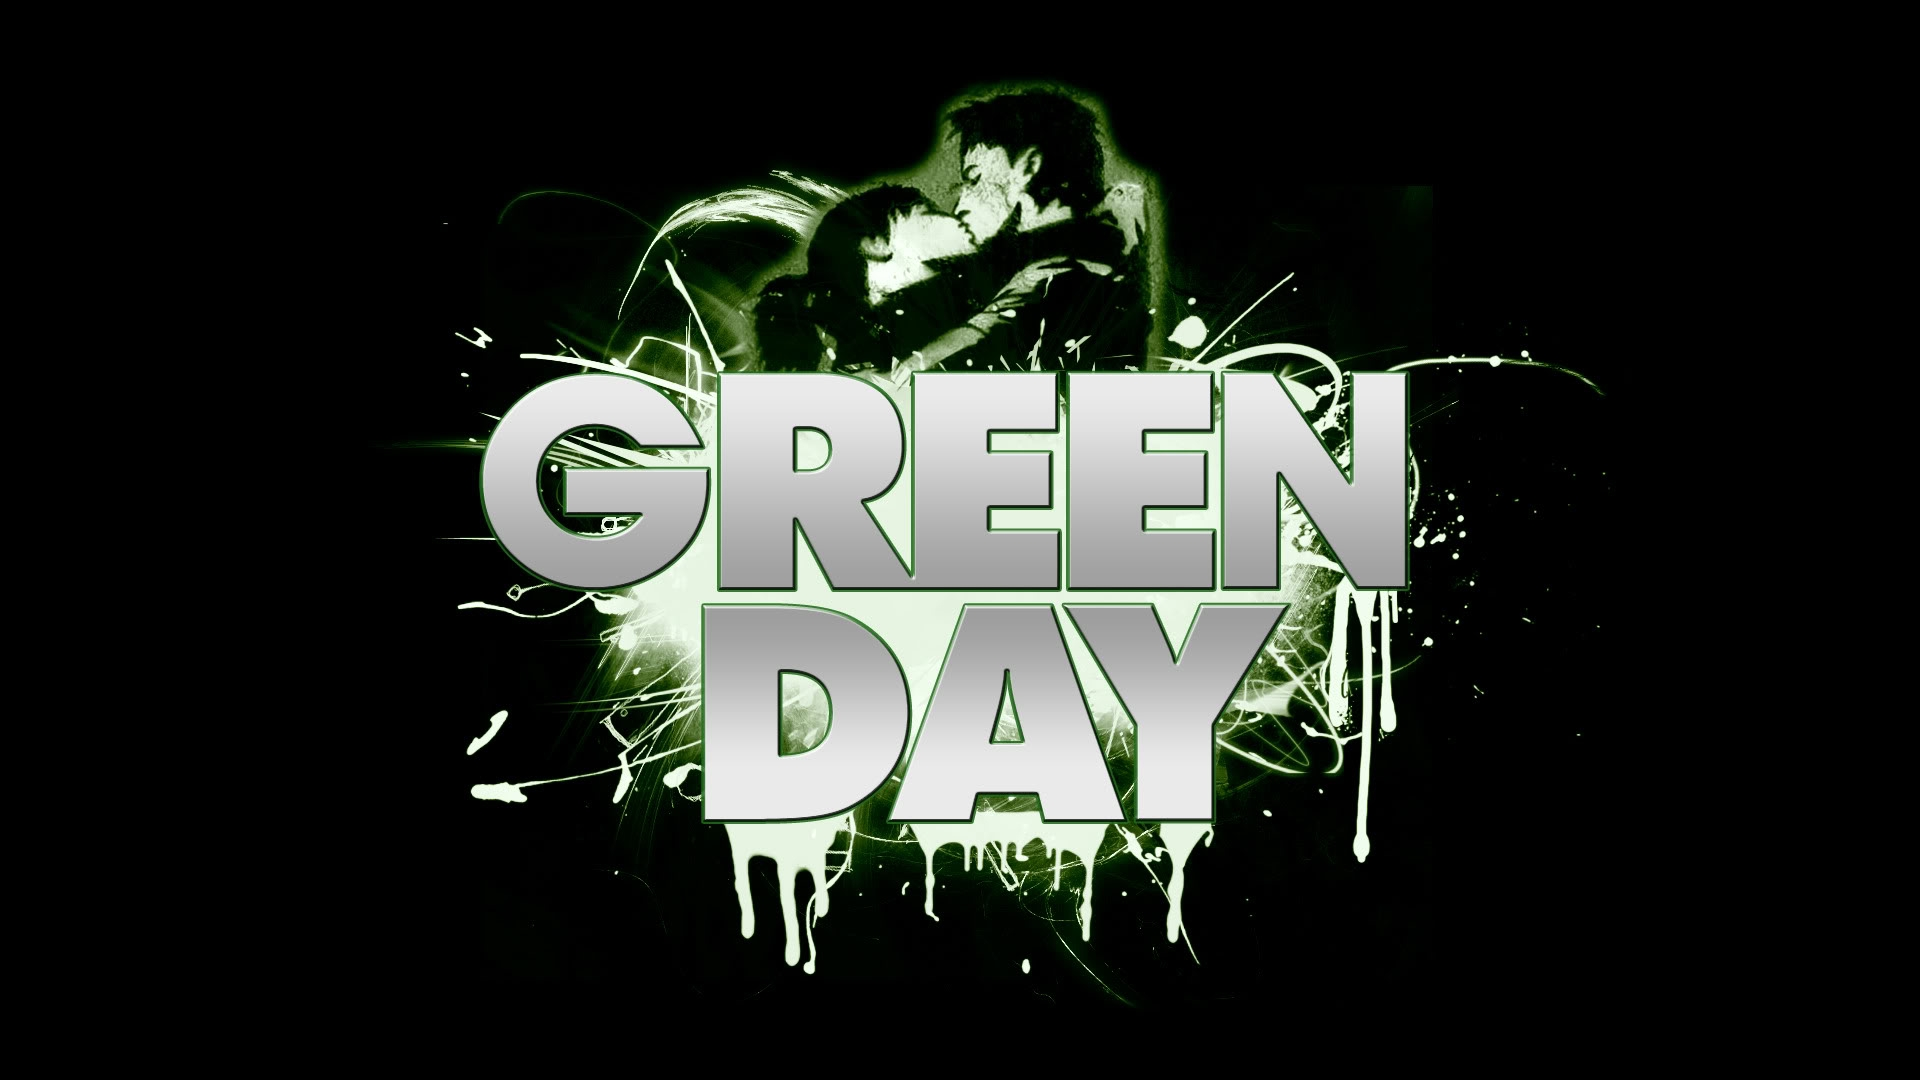 Amazing Wallpaper Logo Green Day - green_day_letters_darkness_sign_kiss_1904_1920x1080  You Should Have_737044.jpg